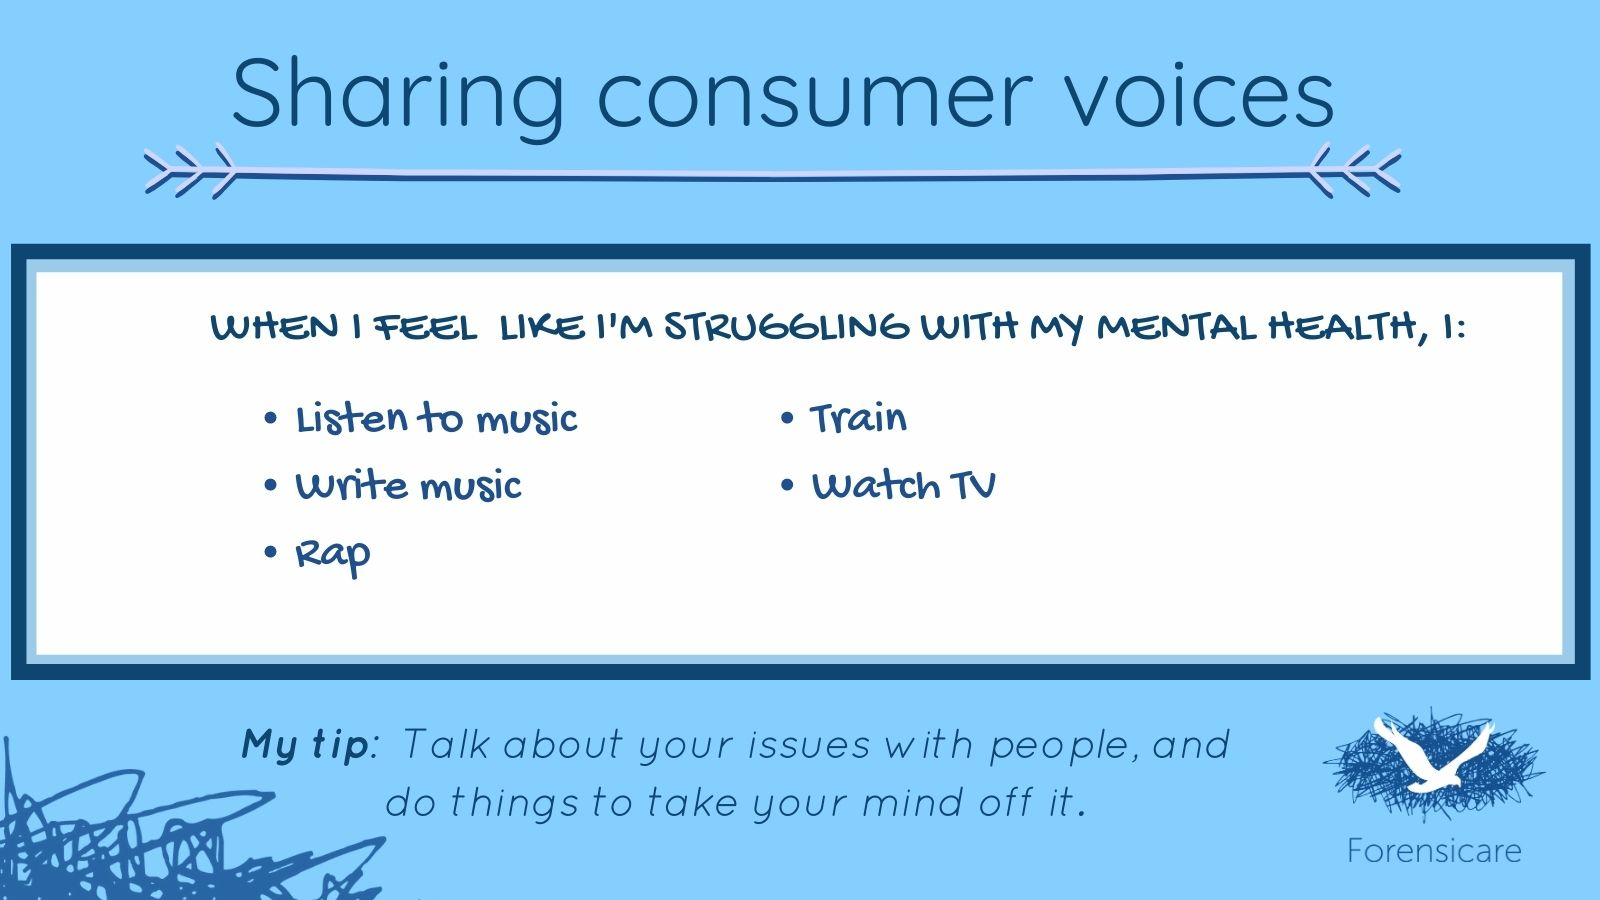 Mental health tips from consumers